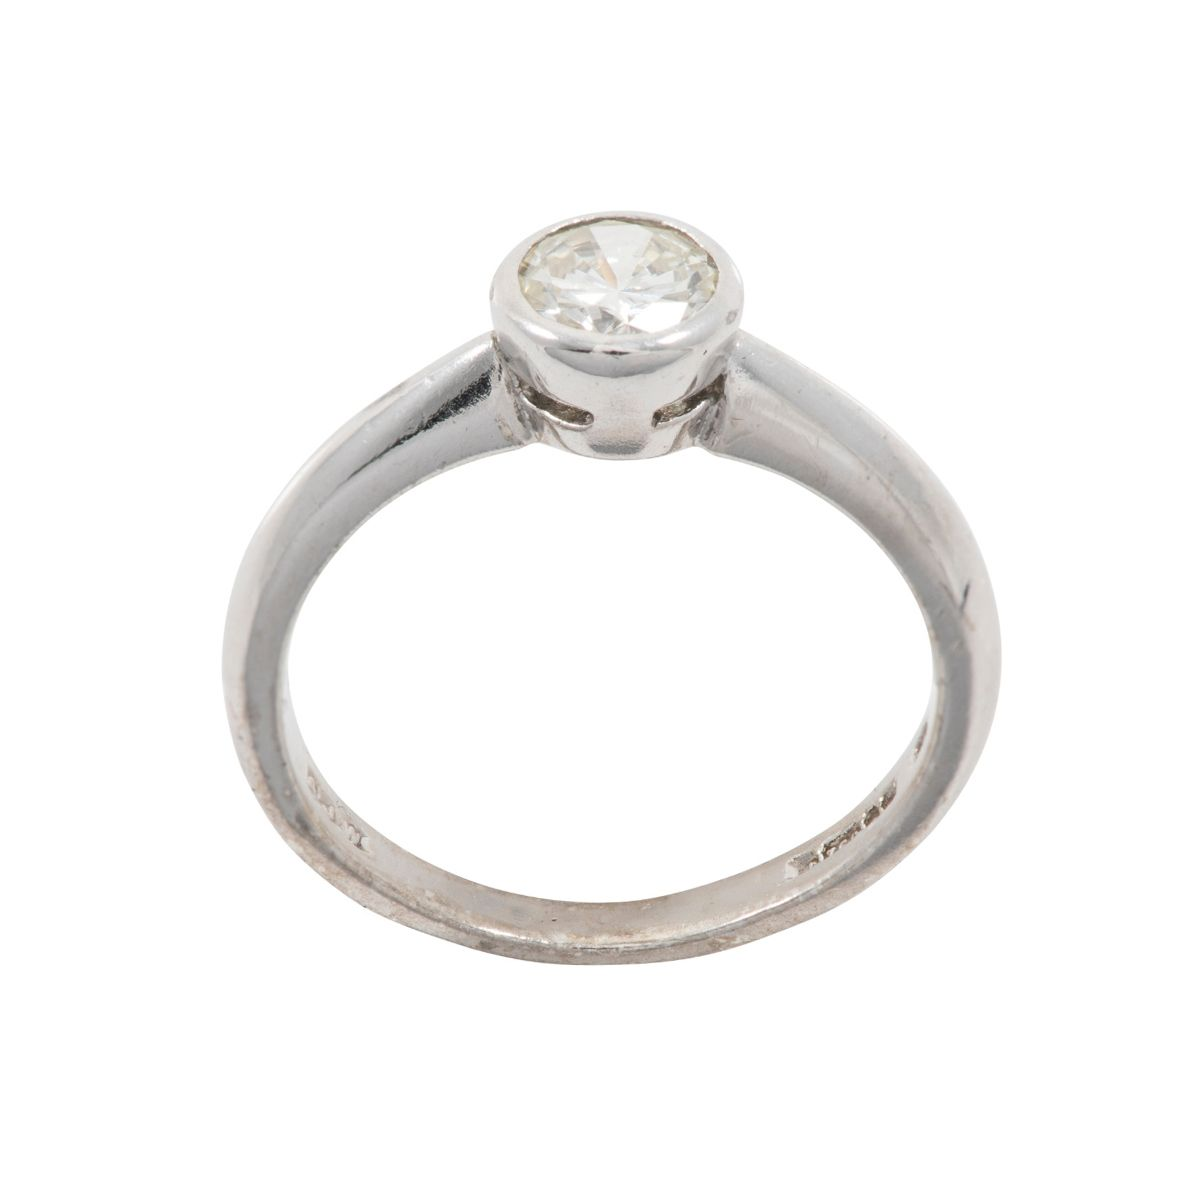 18ct White Gold 0.50ct Round Brilliant Cut Diamond Solitaire Ring Ladies Size K